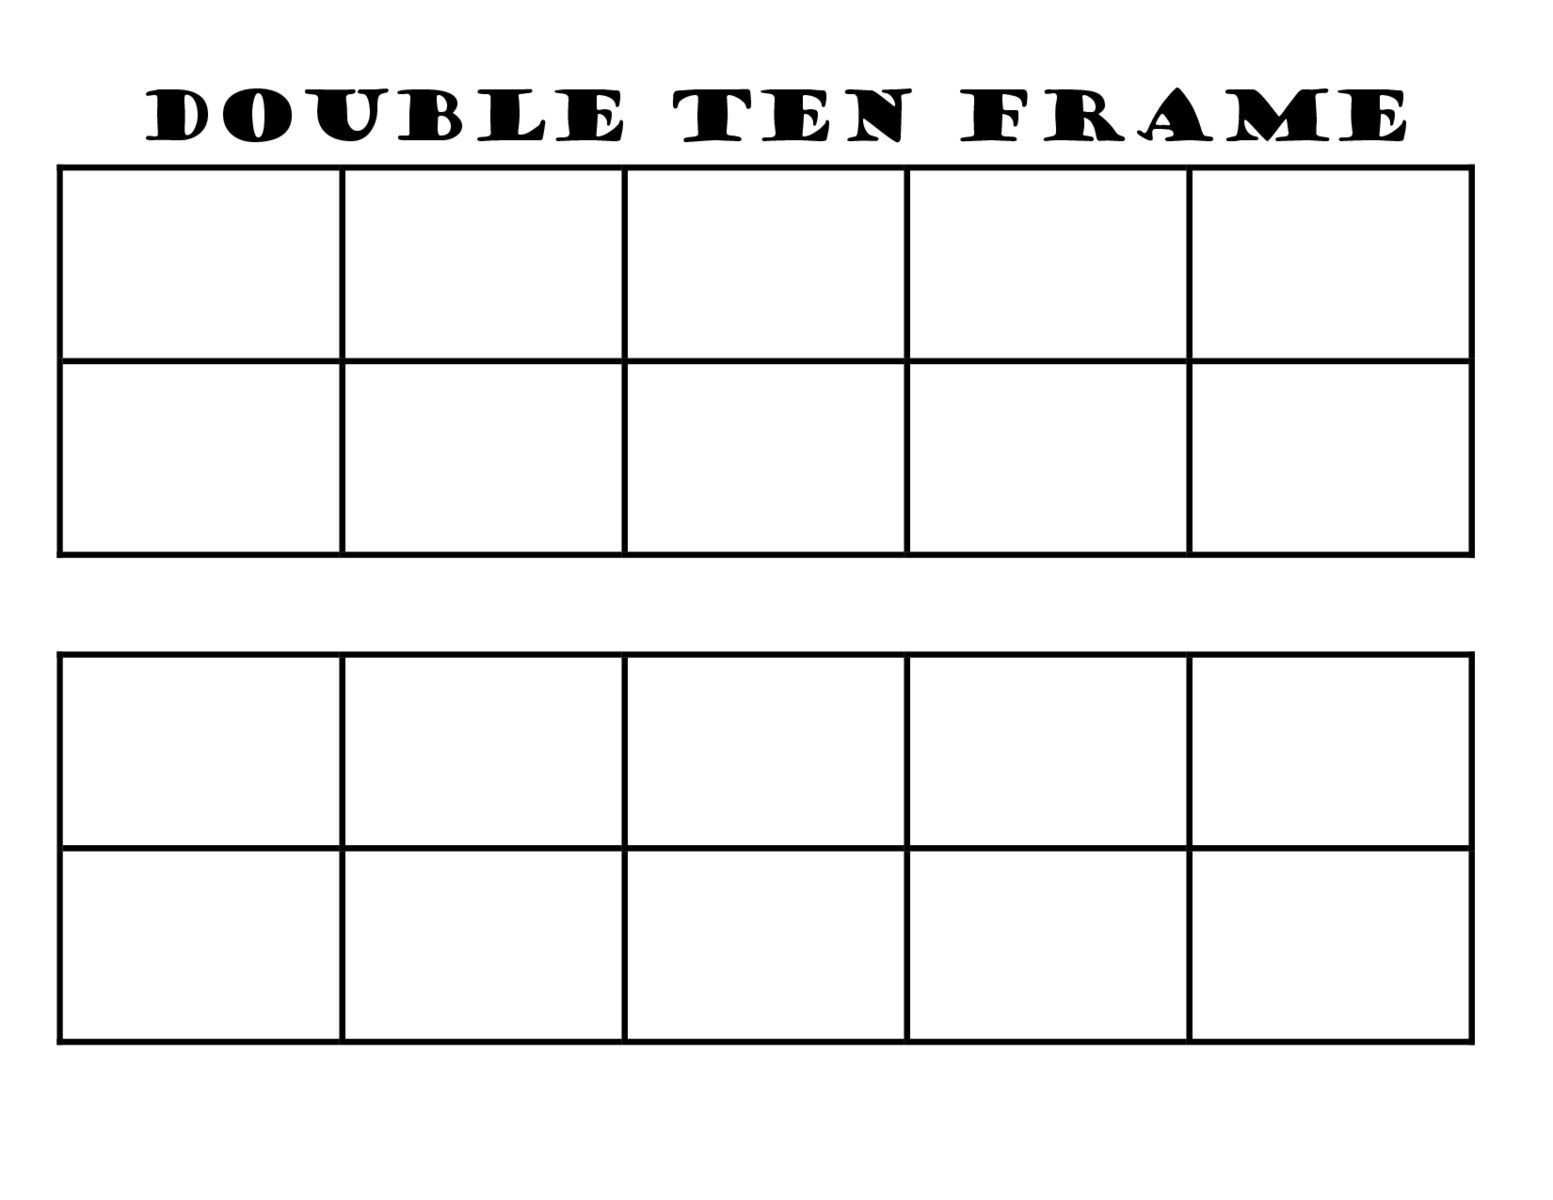 1 Choose A Number Between 10 And 20 Draw That Number Of